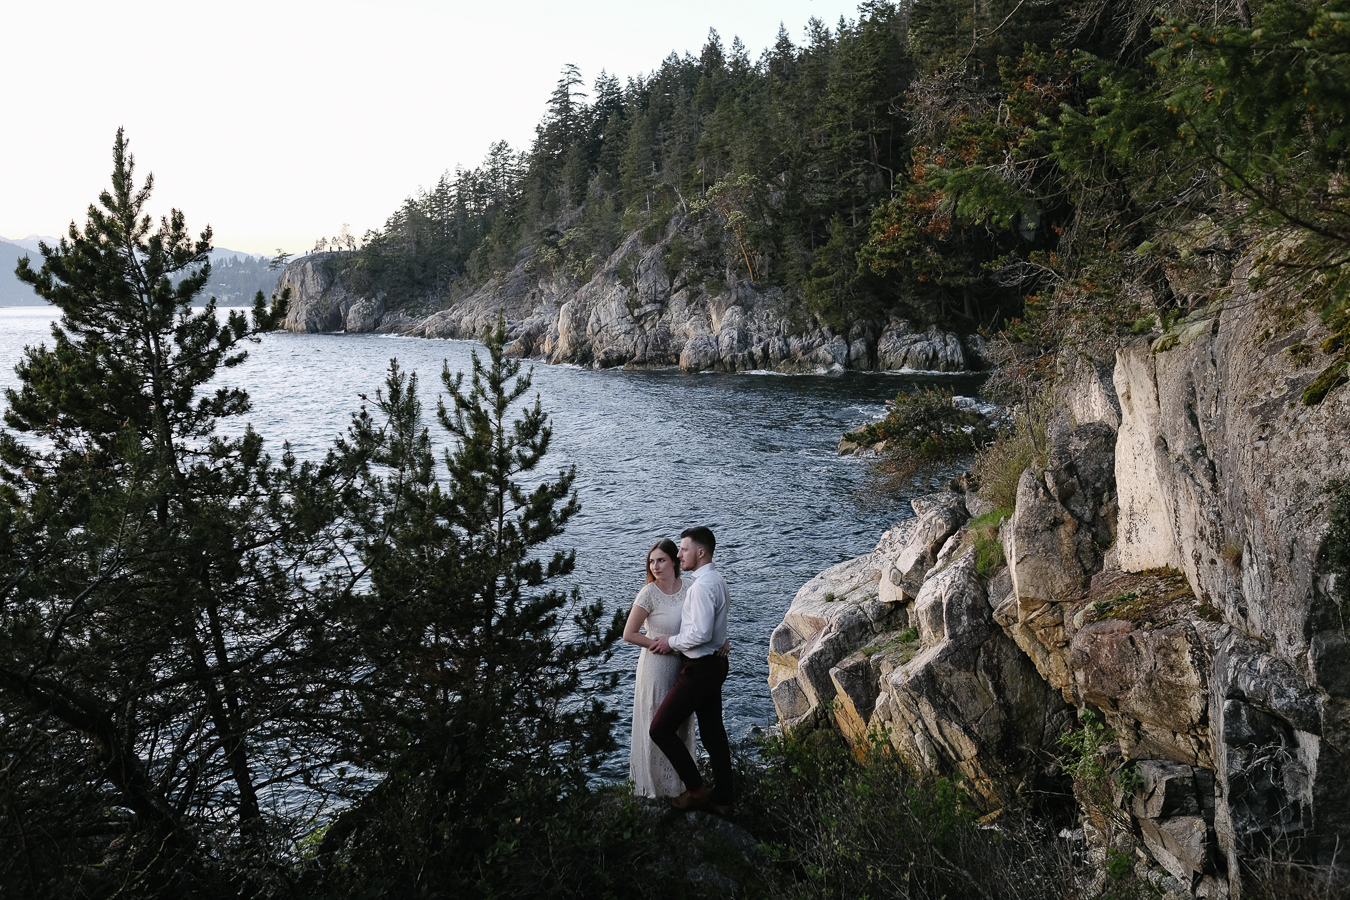 Pacific North West landscape with engaged couple